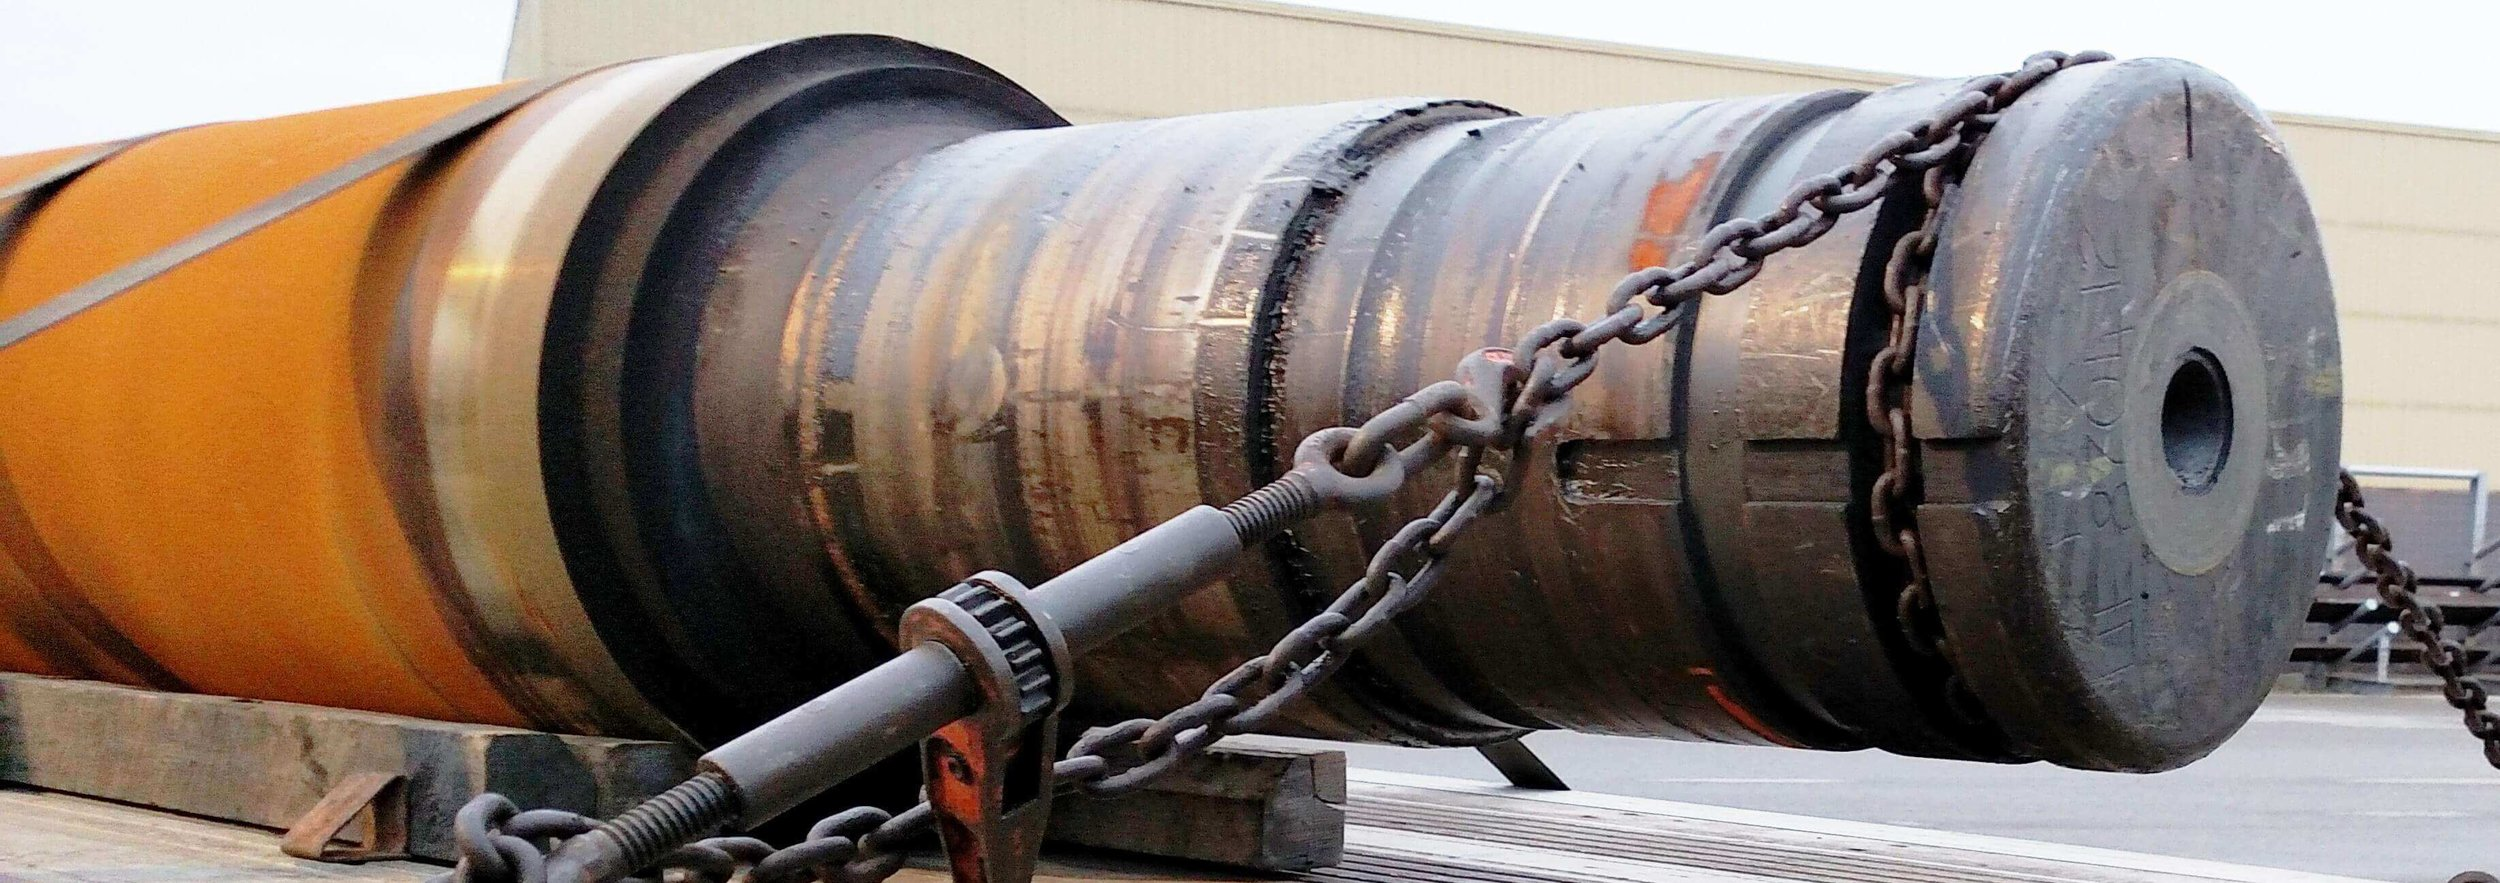 H-1:  Always choke the barrel, placing the chain at an angle, pulling back from the front and forward from the rear.